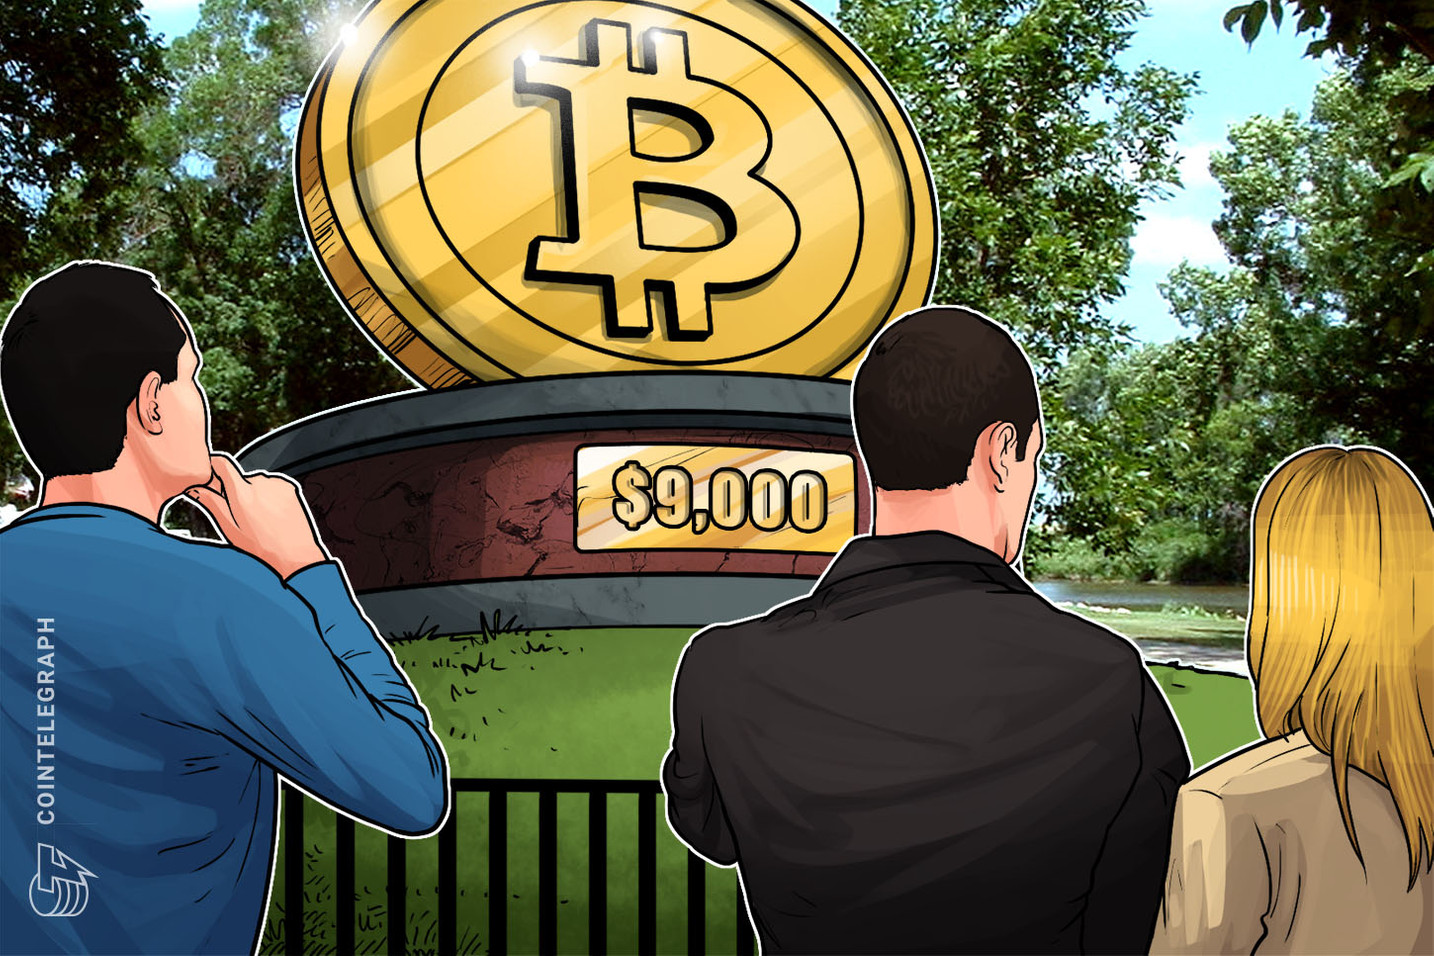 Bitcoin Price Tests $9K as Analyst Eyes 'Significant' Indicator Cross